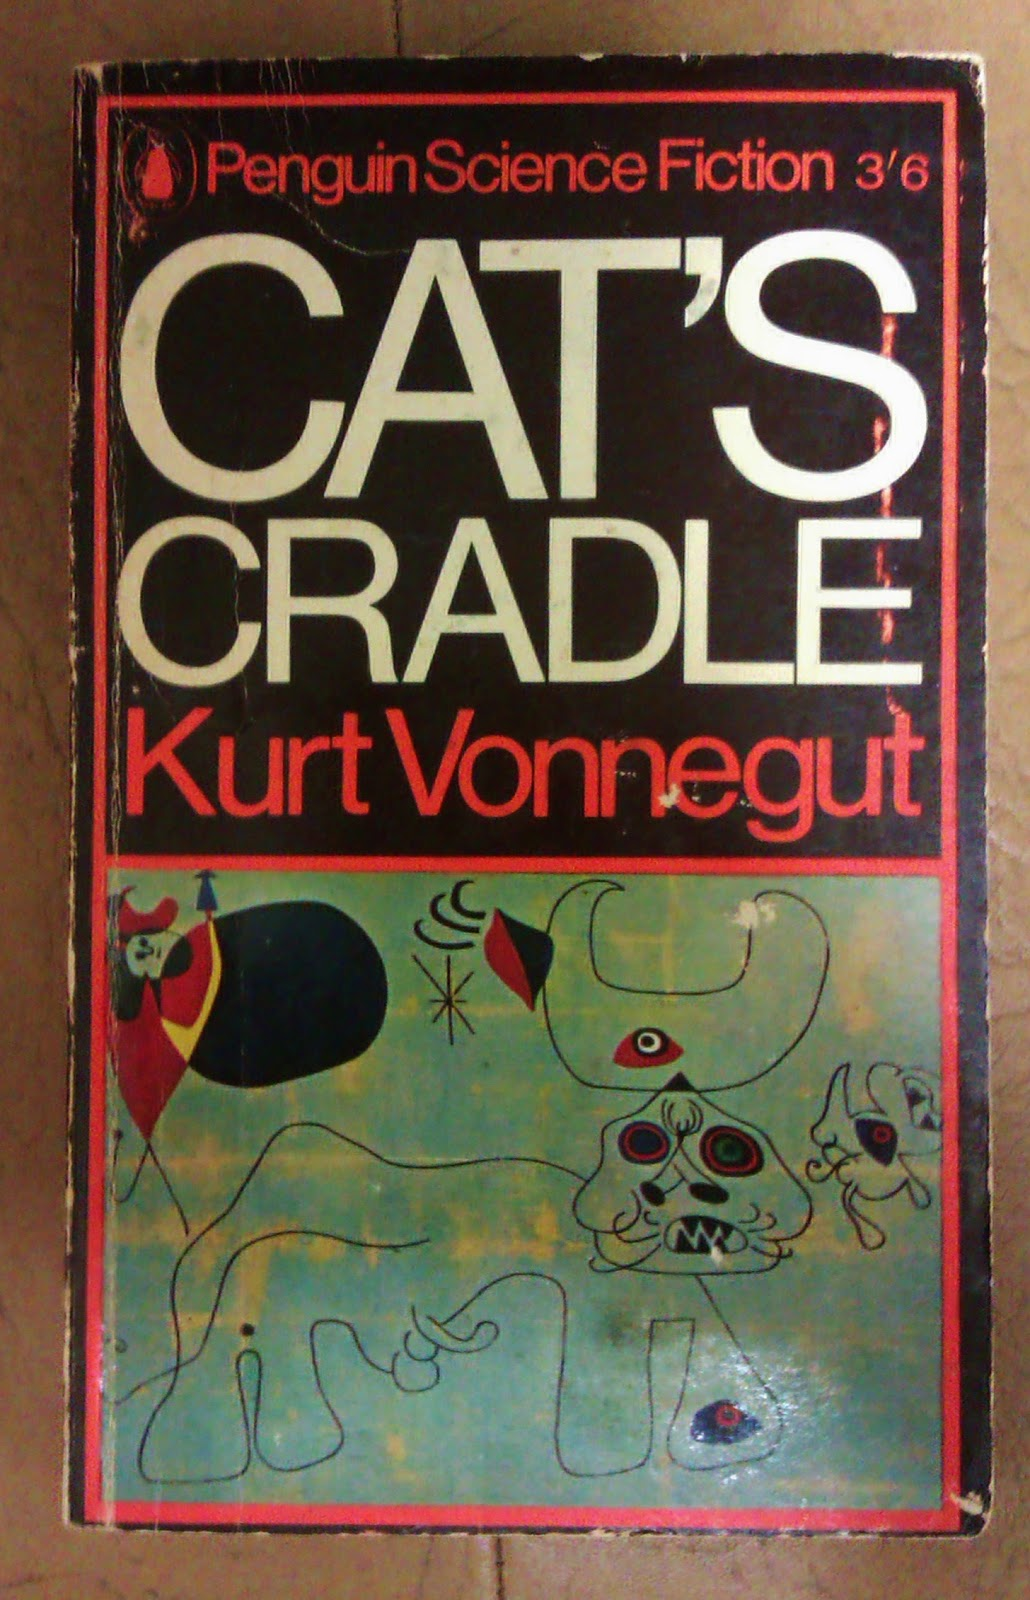 cat s cradle vonnegut s perspective of human 427 cat's cradle, kurt vonnegut cat's cradle is the fourth novel by american writer kurt vonnegut, first published in 1963 it explores issues of science, technology, and religion, satirizing the arms race and many other targets along the way.